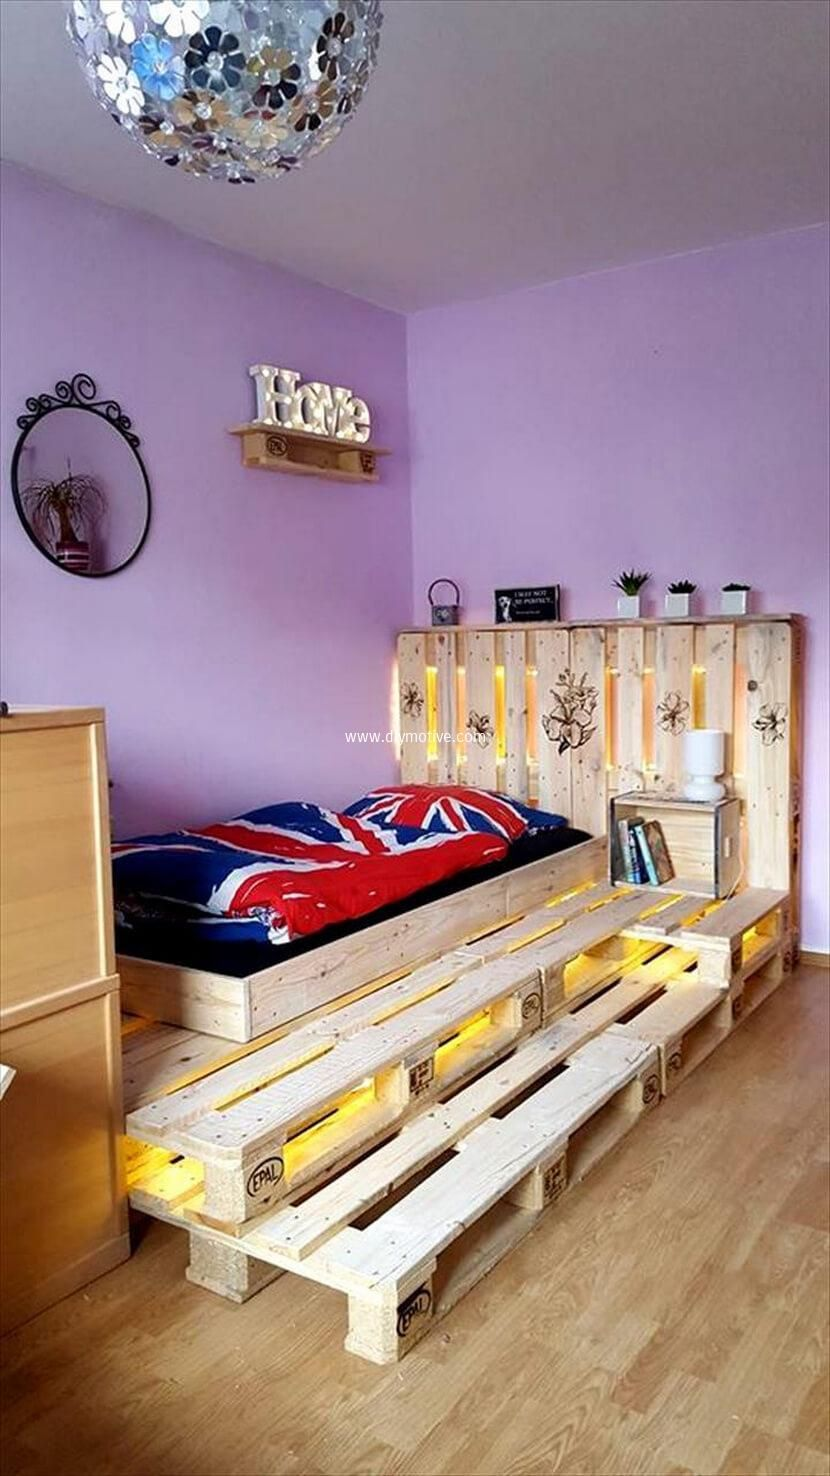 Diy pallet bedroom furniture  diy ideas for wood pallet beds  pallet frames pallet boxes and